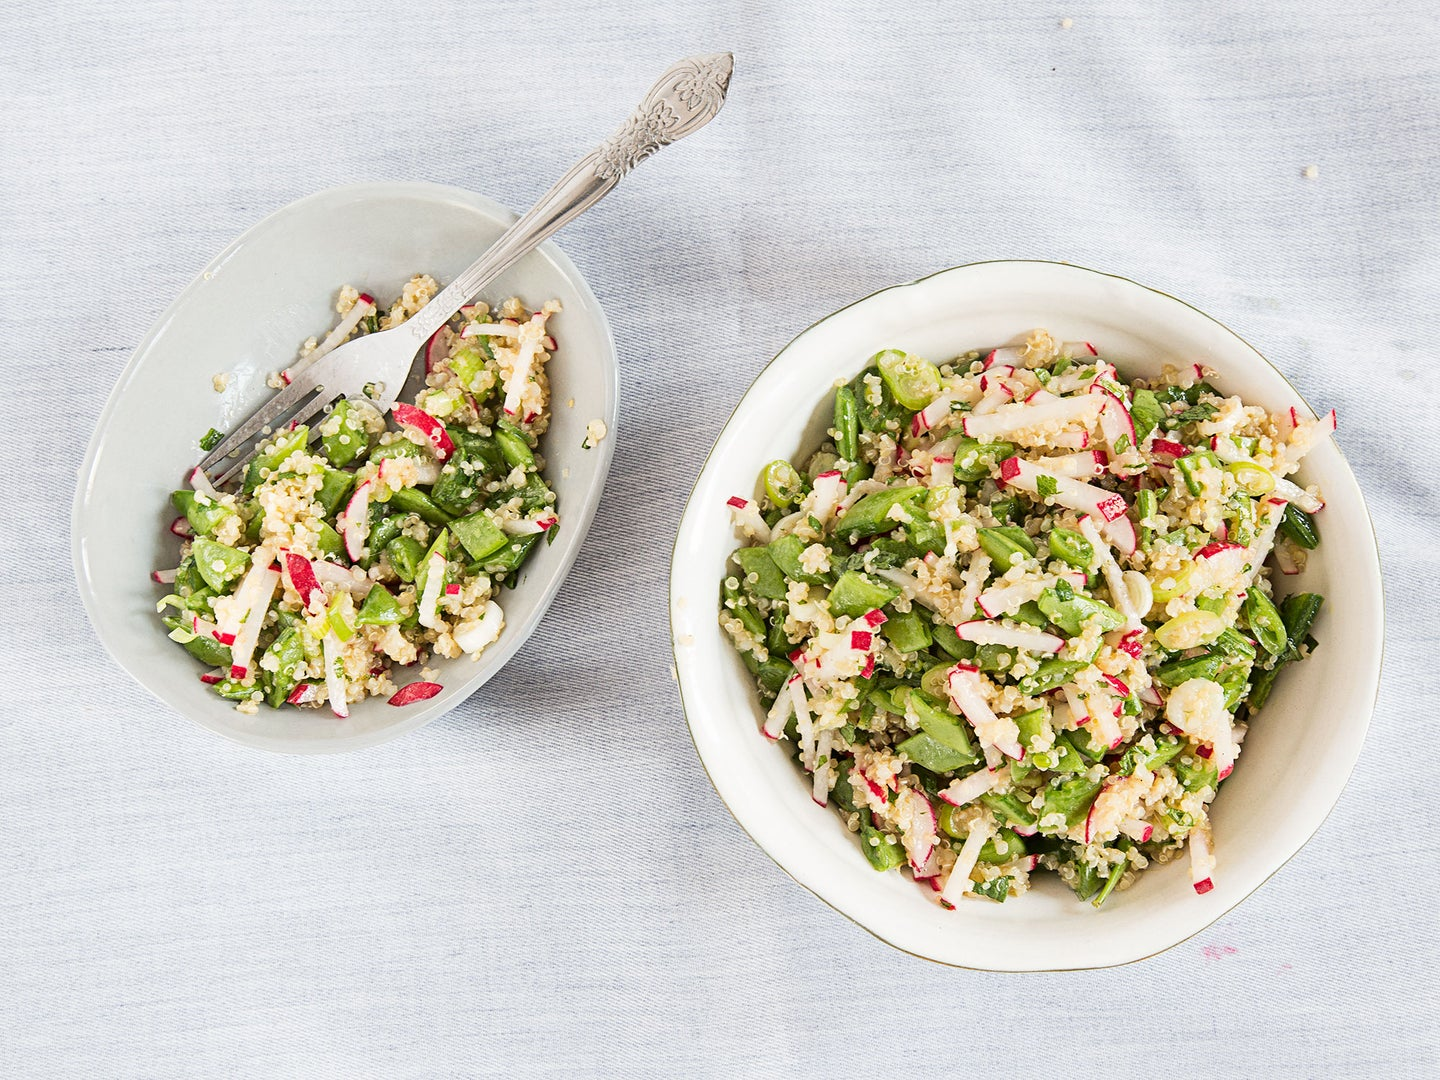 Quinoa Salad with Sugar Snap Peas, Scallions, and Mint